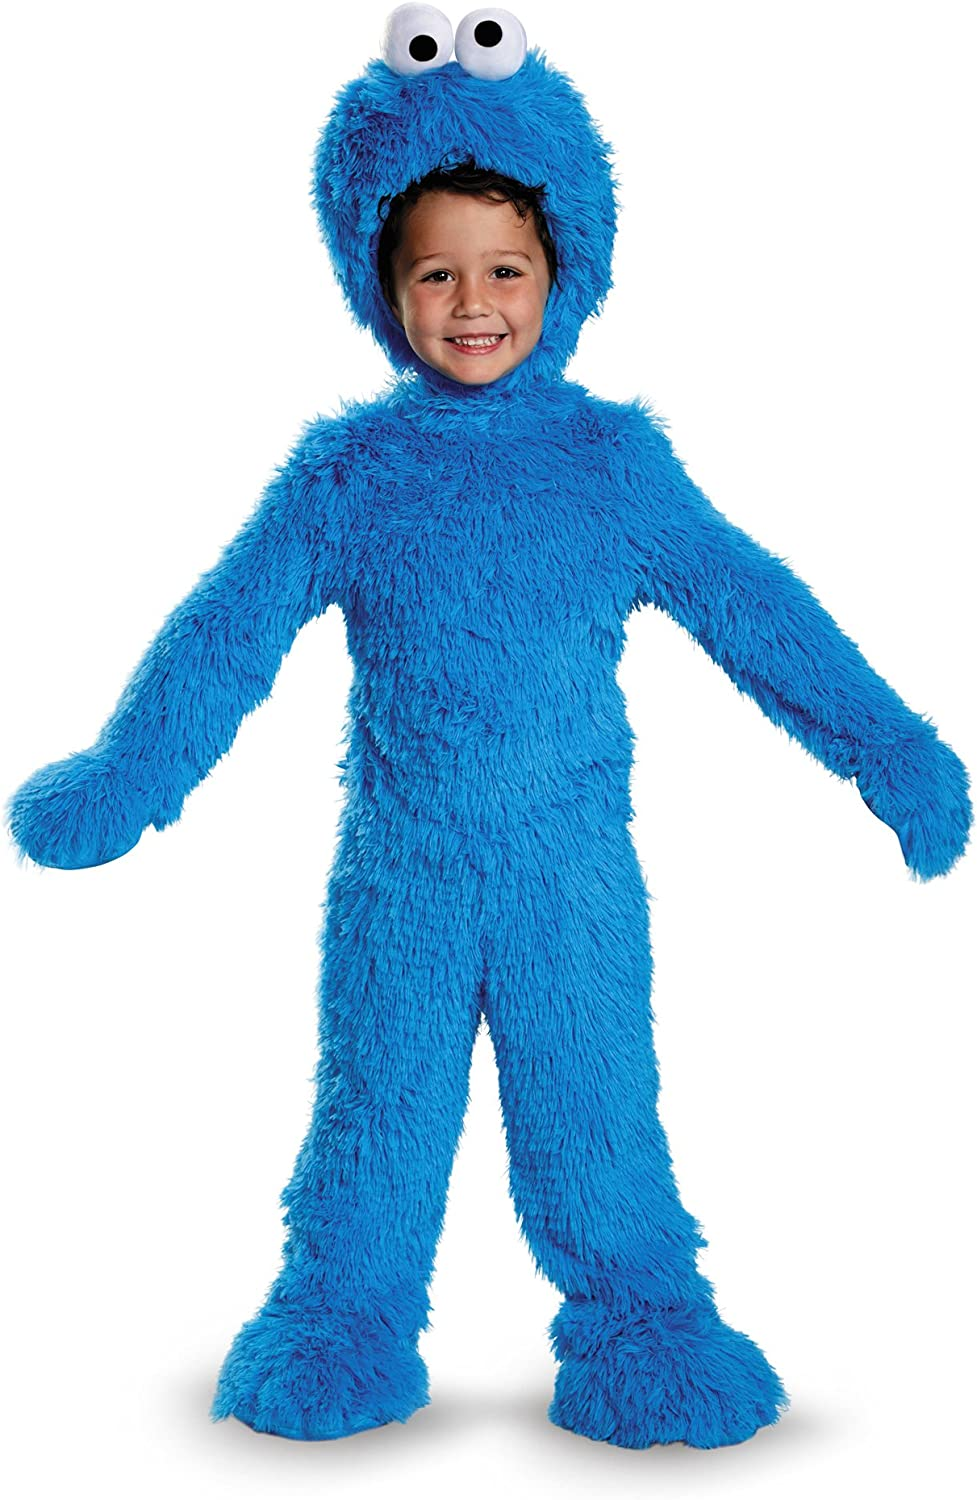 Sesame Street Cookie Monster Extra Deluxe Plush Infant/Toddler Costume